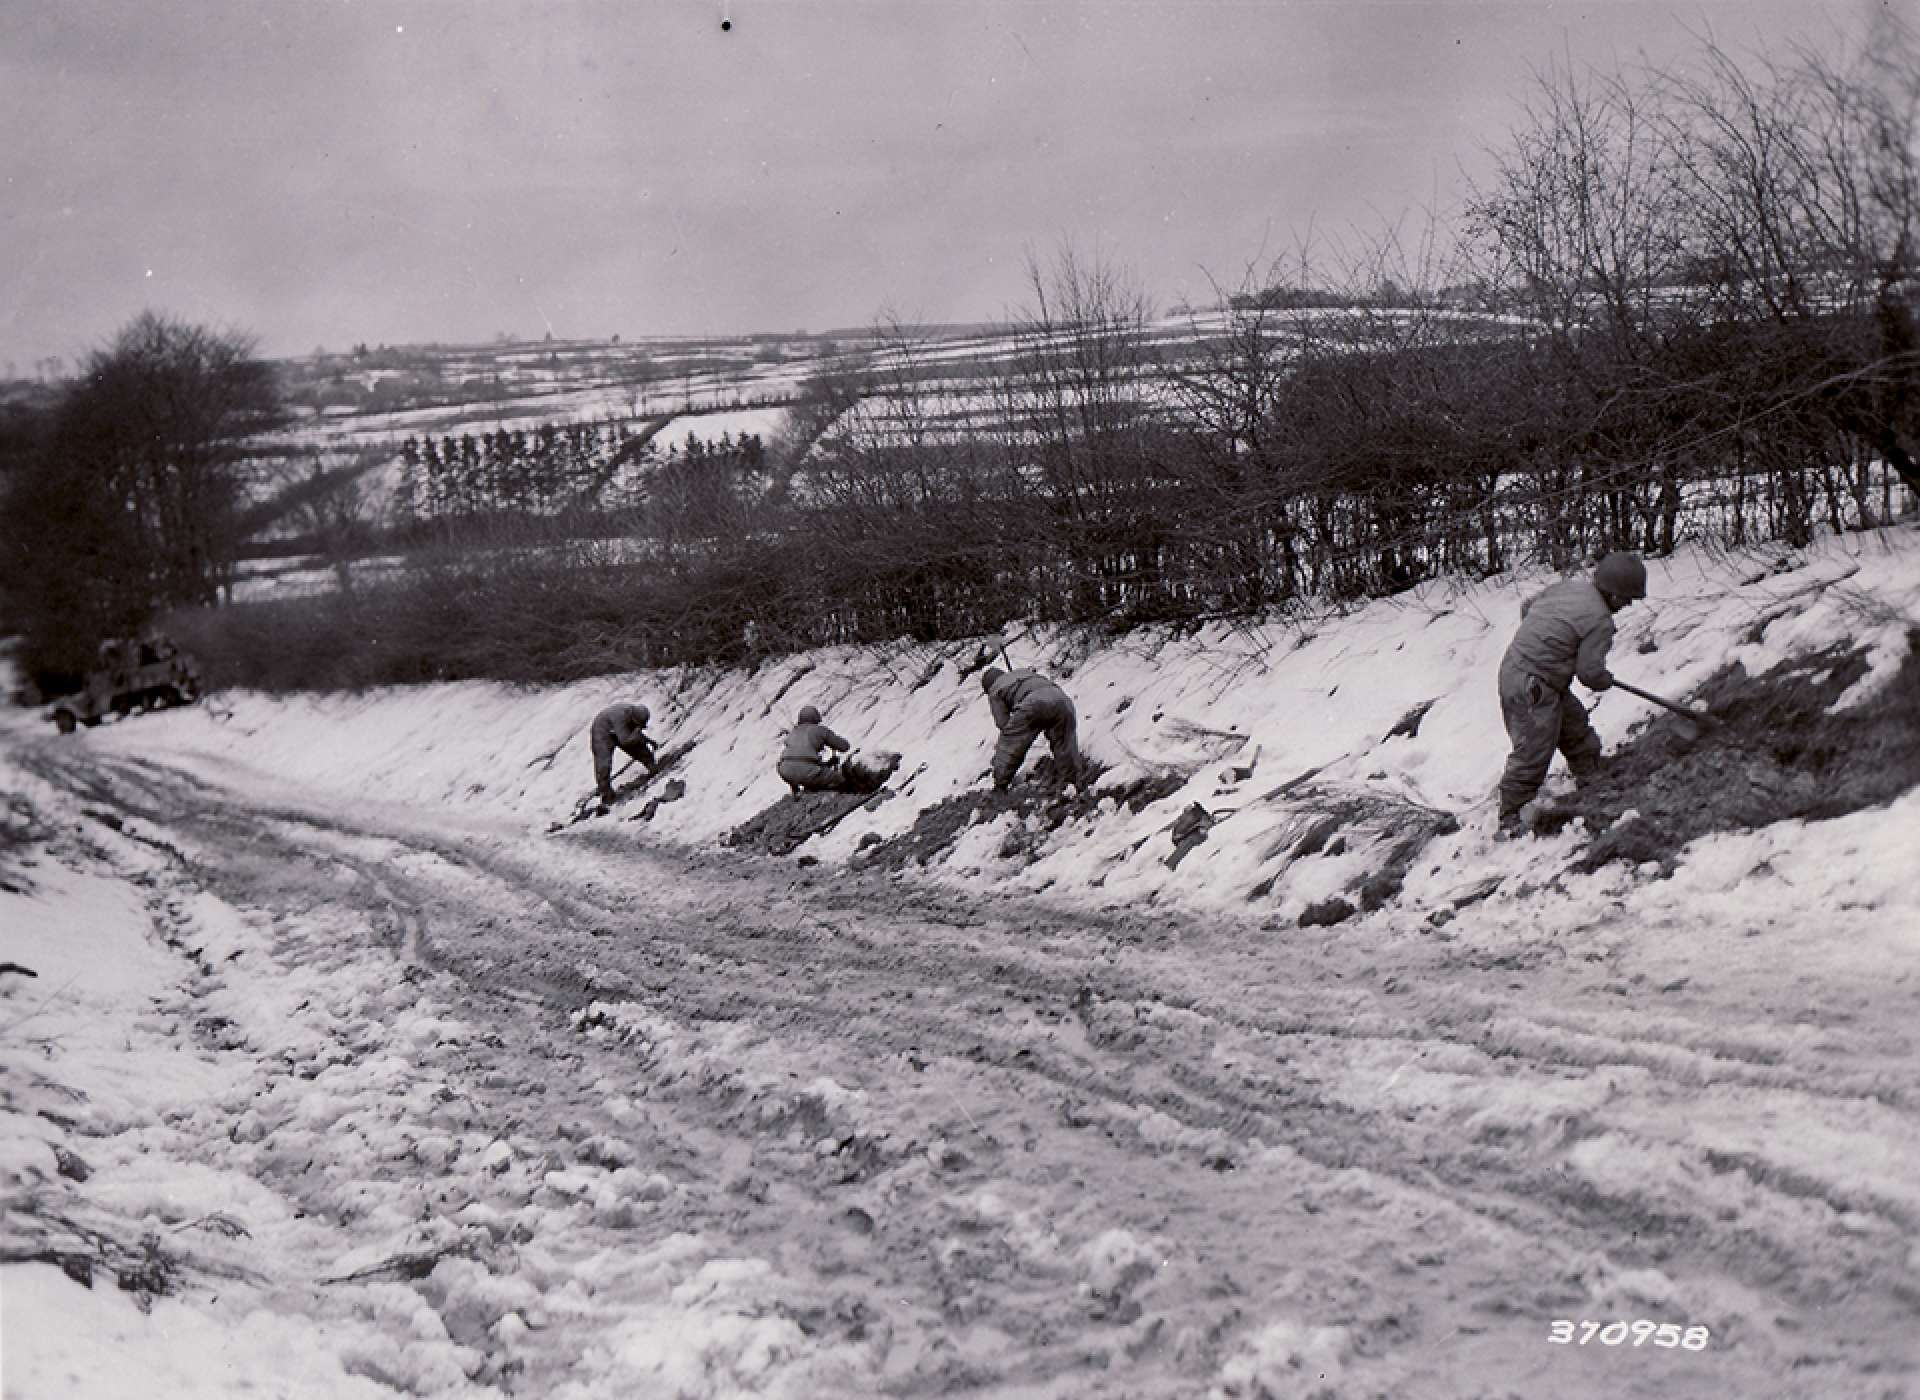 2nd Infantry Division soldiers dig in on a road bank and prepare defensive positions on the end of the Elsenborn Ridge on December 20, 1944. The National WWII Museum Digital Collections.